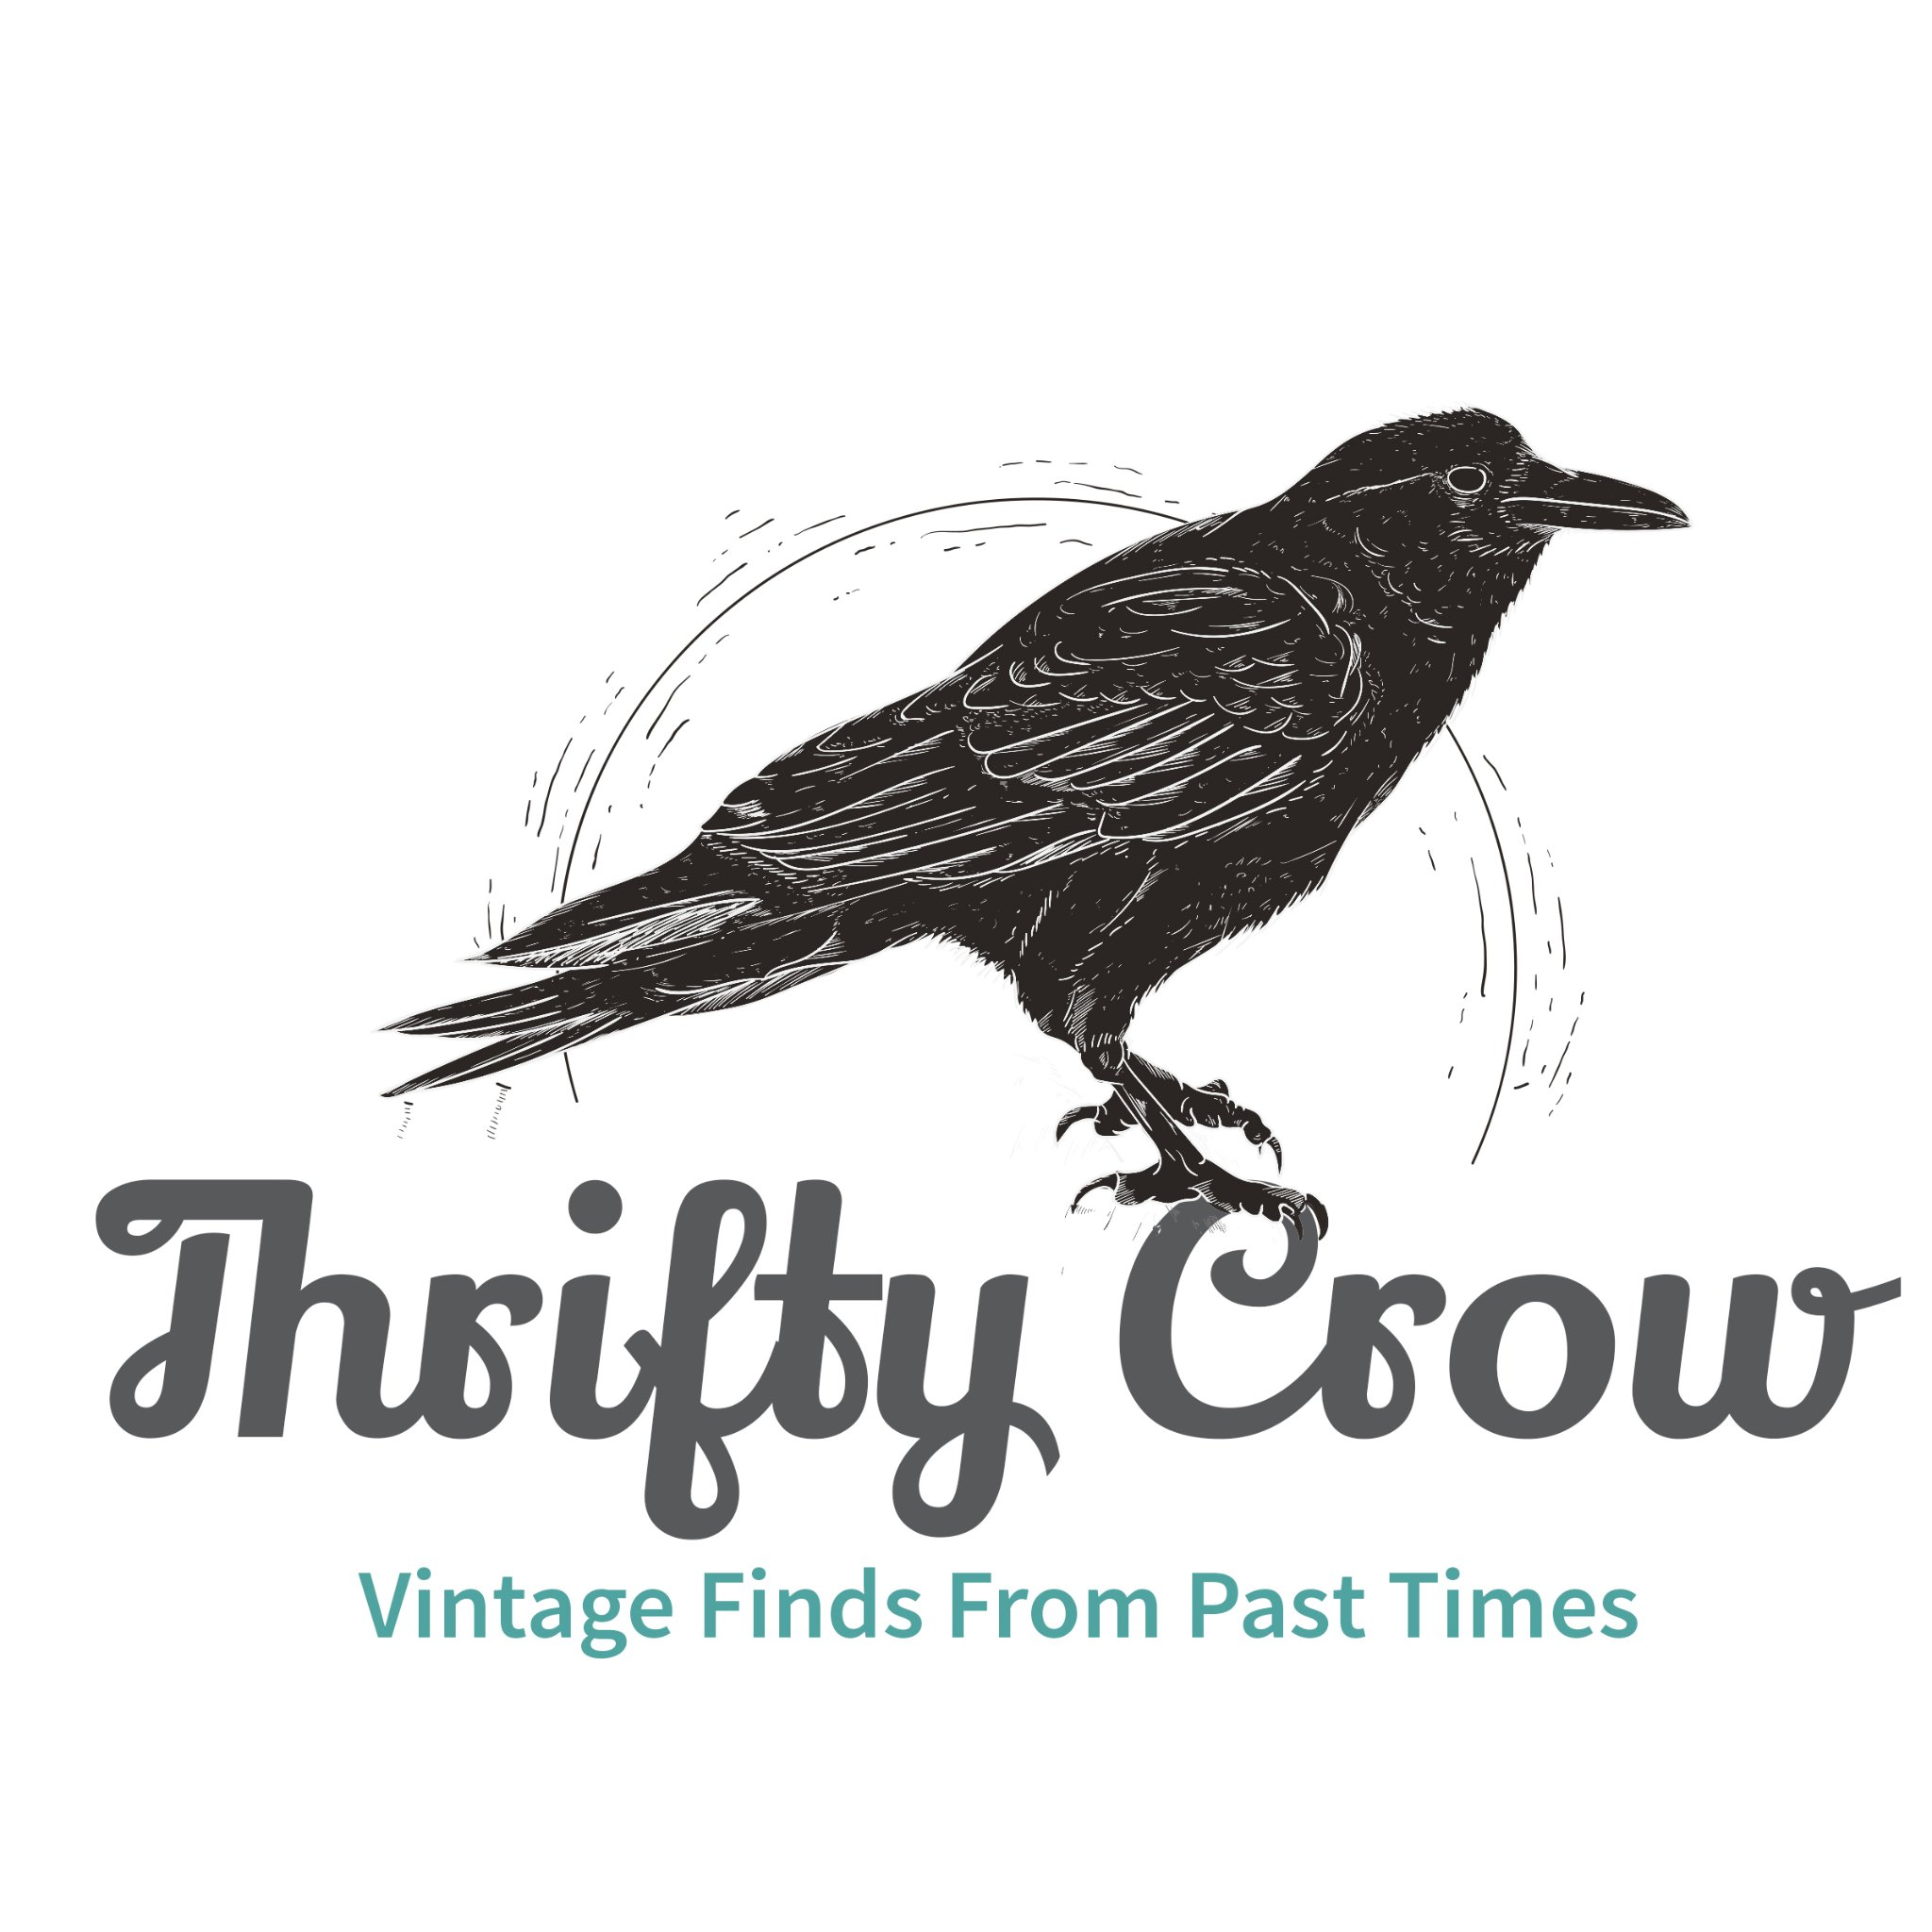 Thrifty Crow Vintage Resale